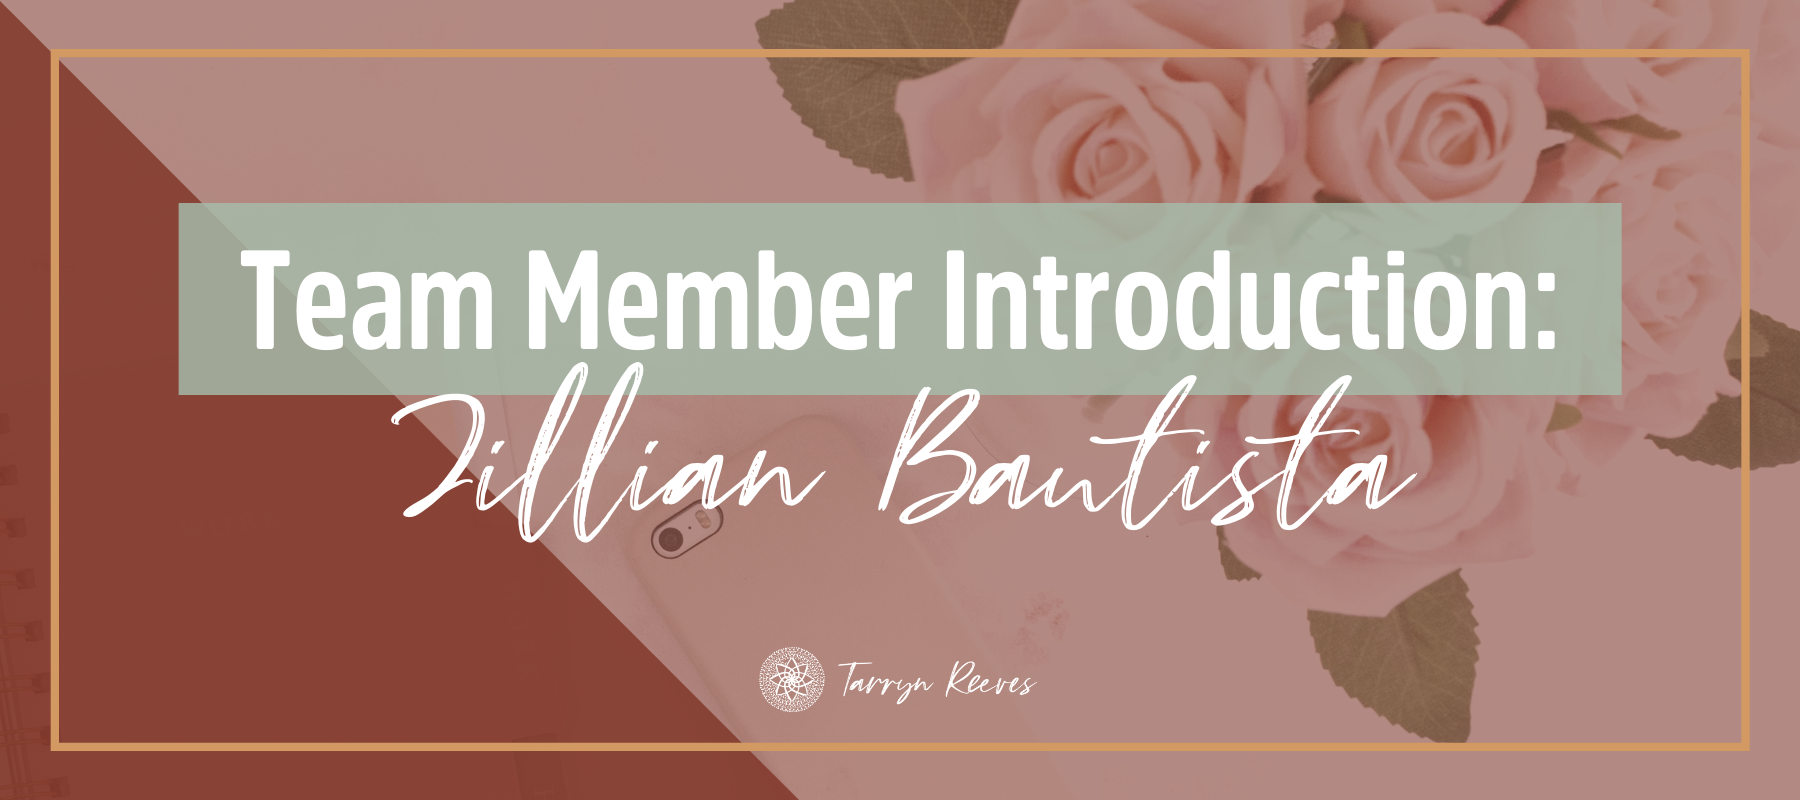 Team Member Introduction – Jillian Bautista